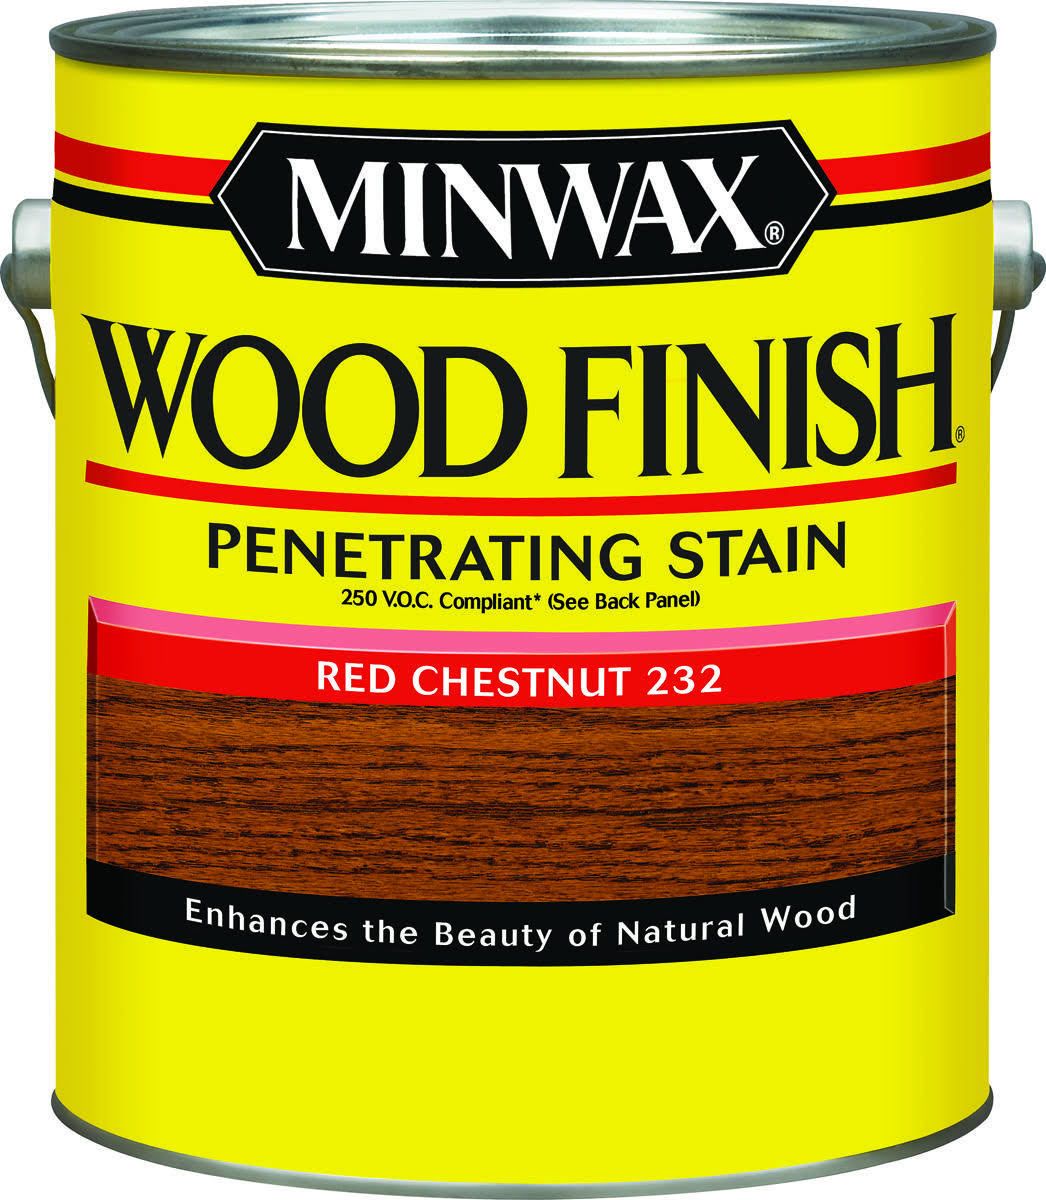 Minwax Wood Finish Penetrating Stain - Red Chestnut 232, 1gal